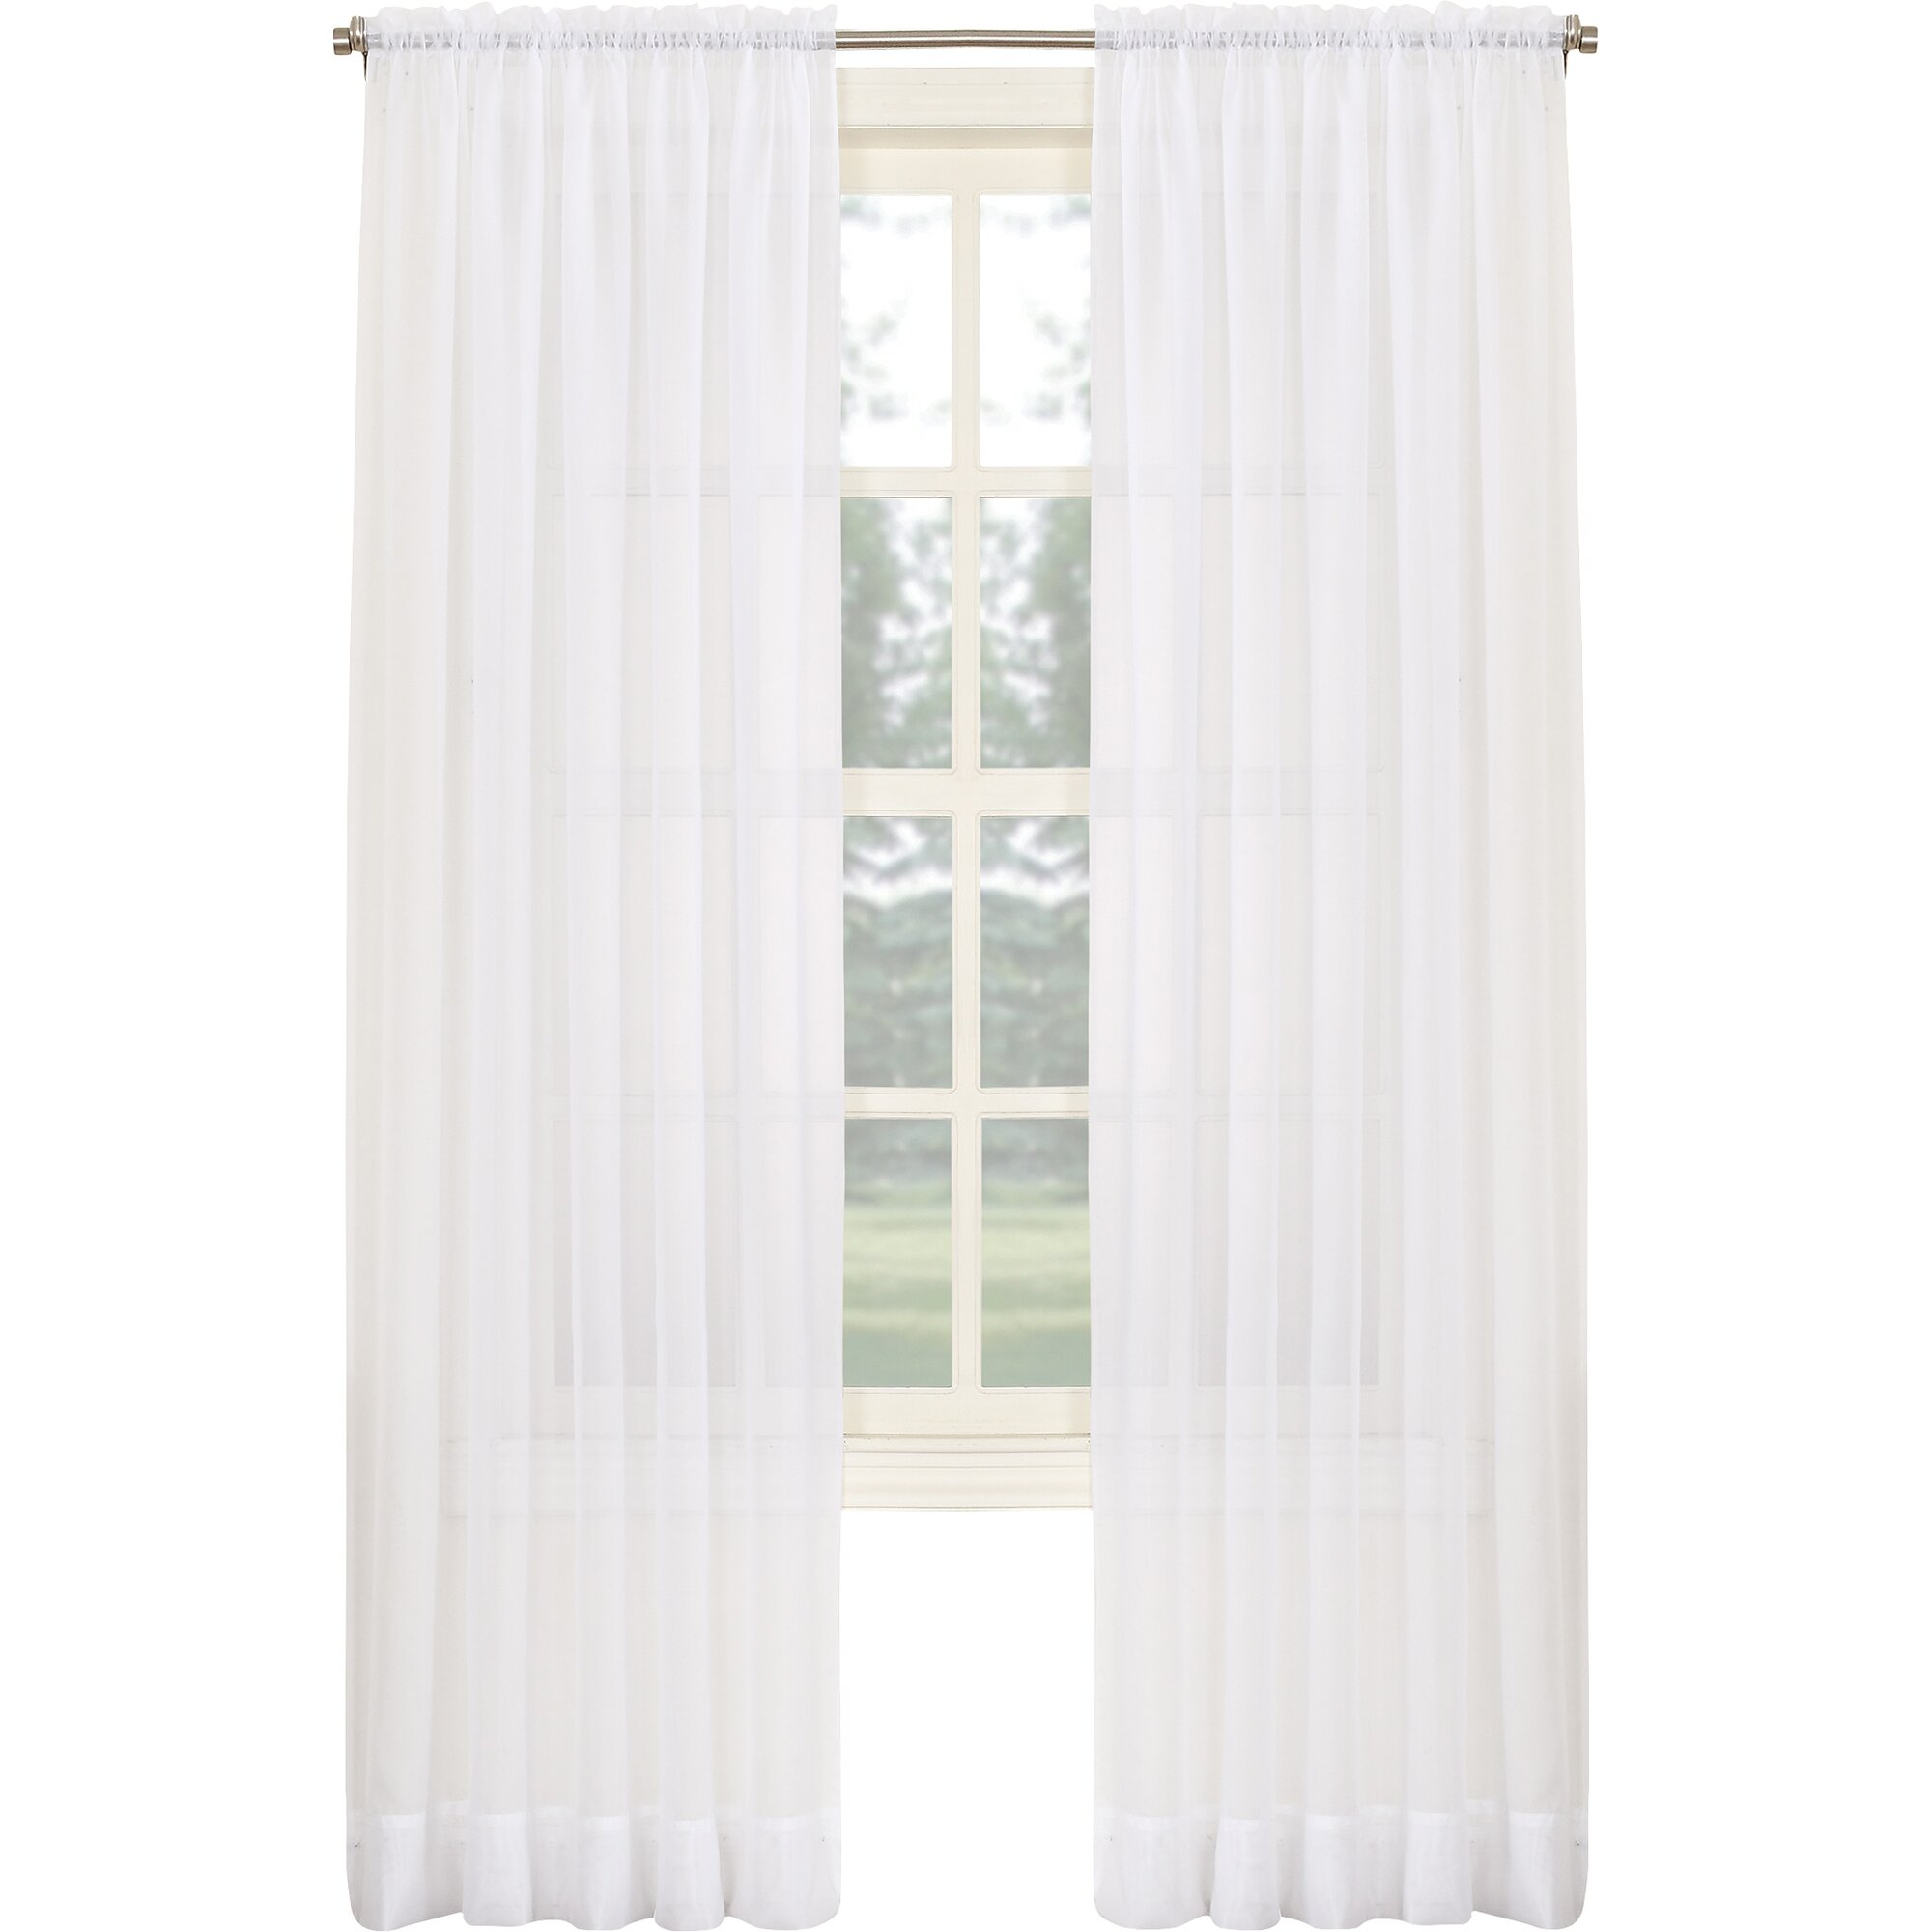 No 918 Sheer Voile Solid Rod Pocket Single Curtain Panel Reviews Wayfair